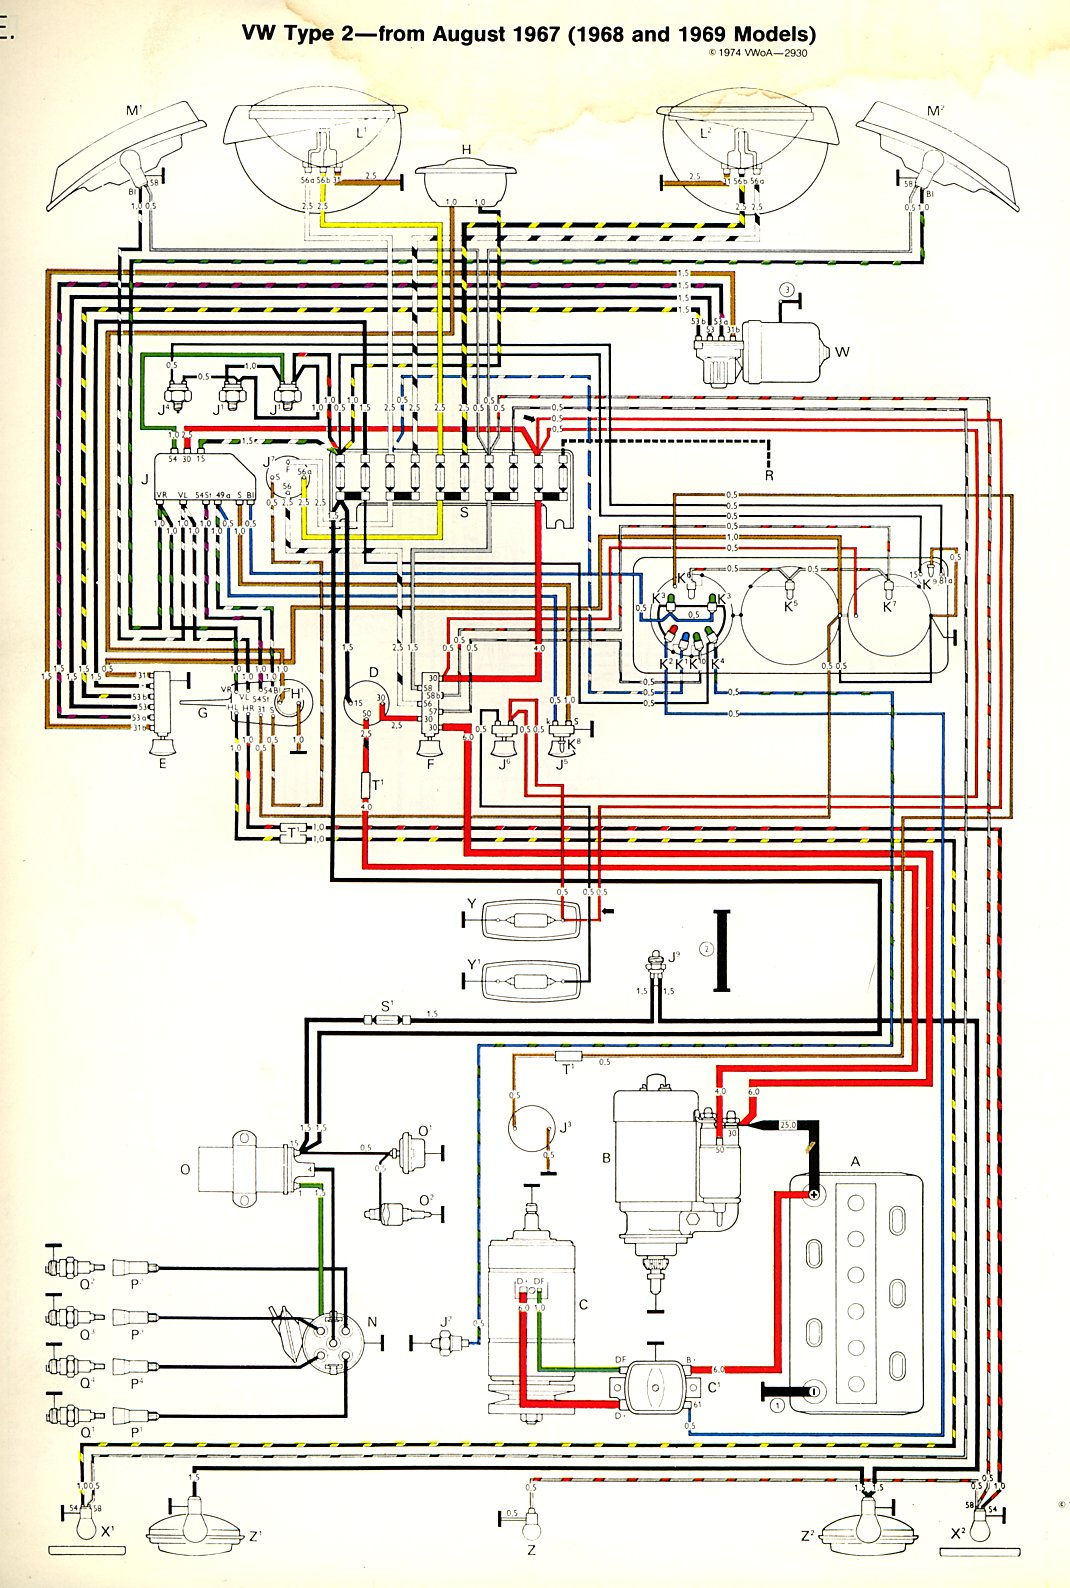 baybus_6869a vw bus wiring diagram 1965 vw bus wiring diagram \u2022 wiring diagrams VW Alternator Hook Up at reclaimingppi.co